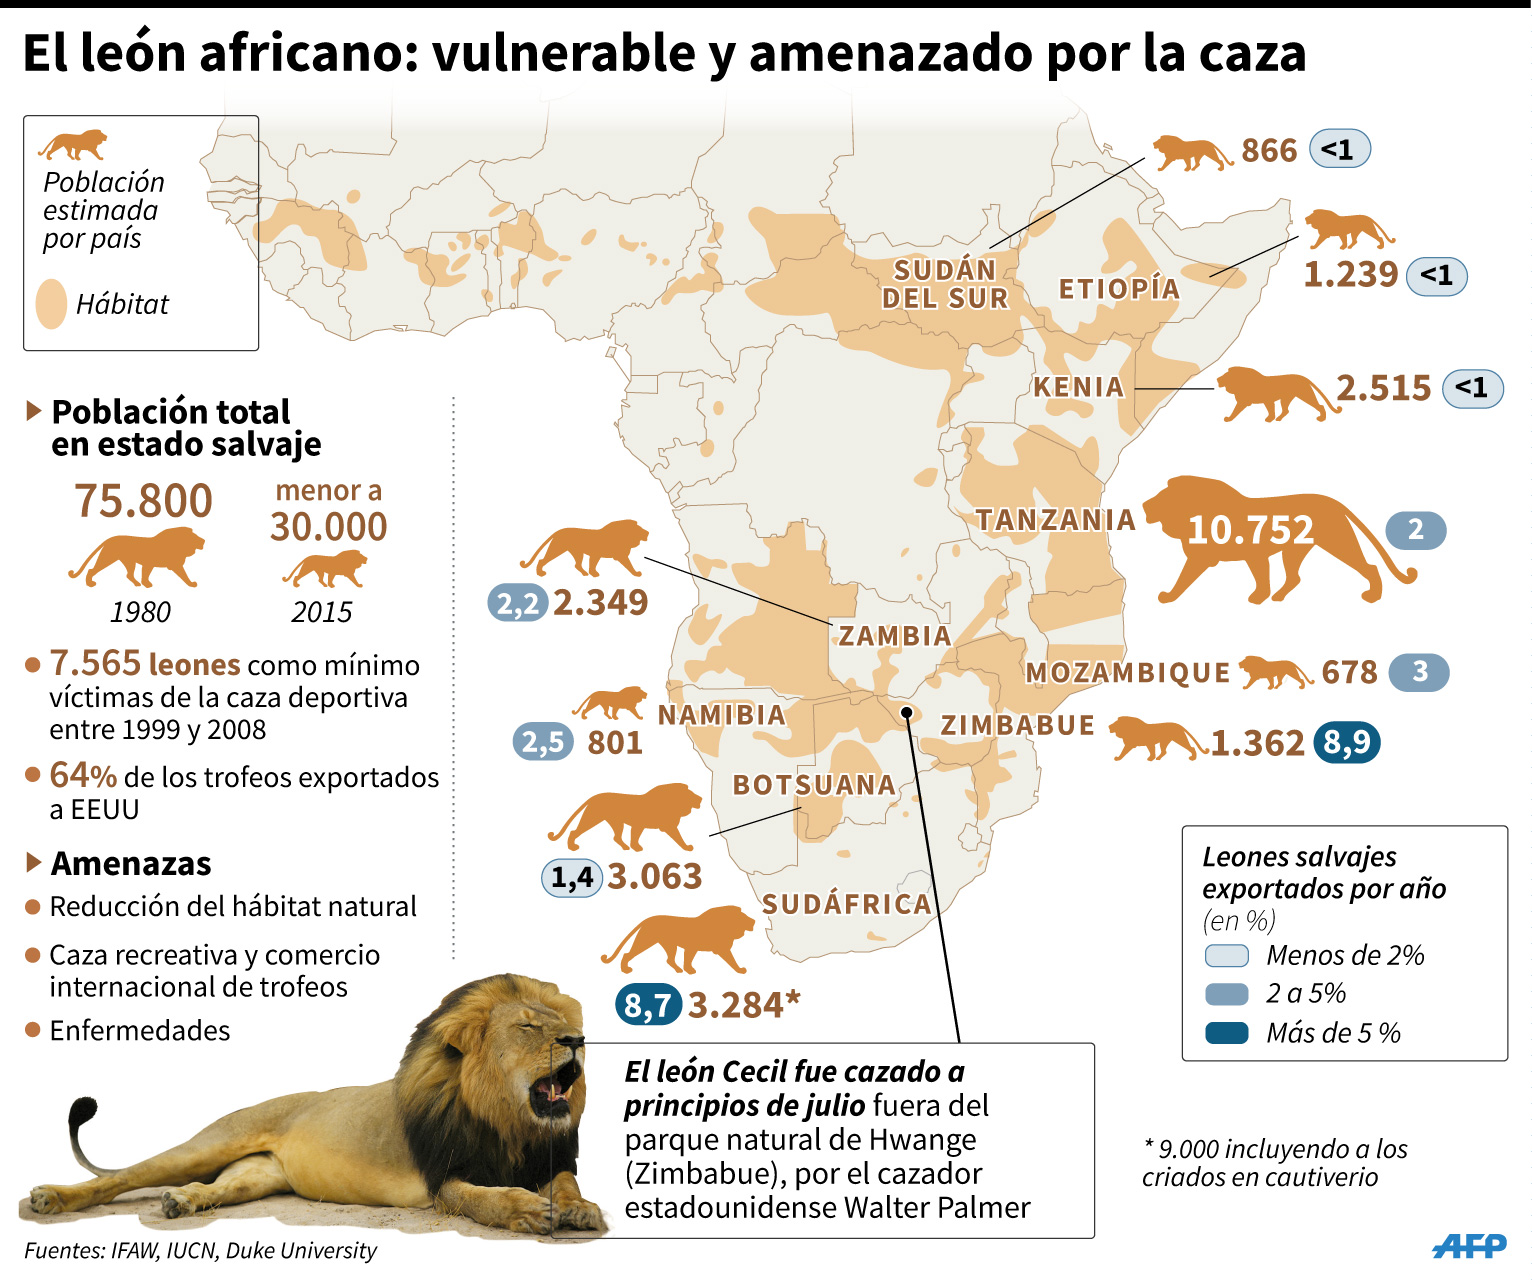 map of where mountain lions live with Visual Leon Africano Vulnerable A Caza 65 on Walrus further Wildlife Wednesday Grizzly Bear Sighting In Yellowstone National Park together with Troph Foodchain as well History Prophecy Of Esau Part 1 together with Zebras.